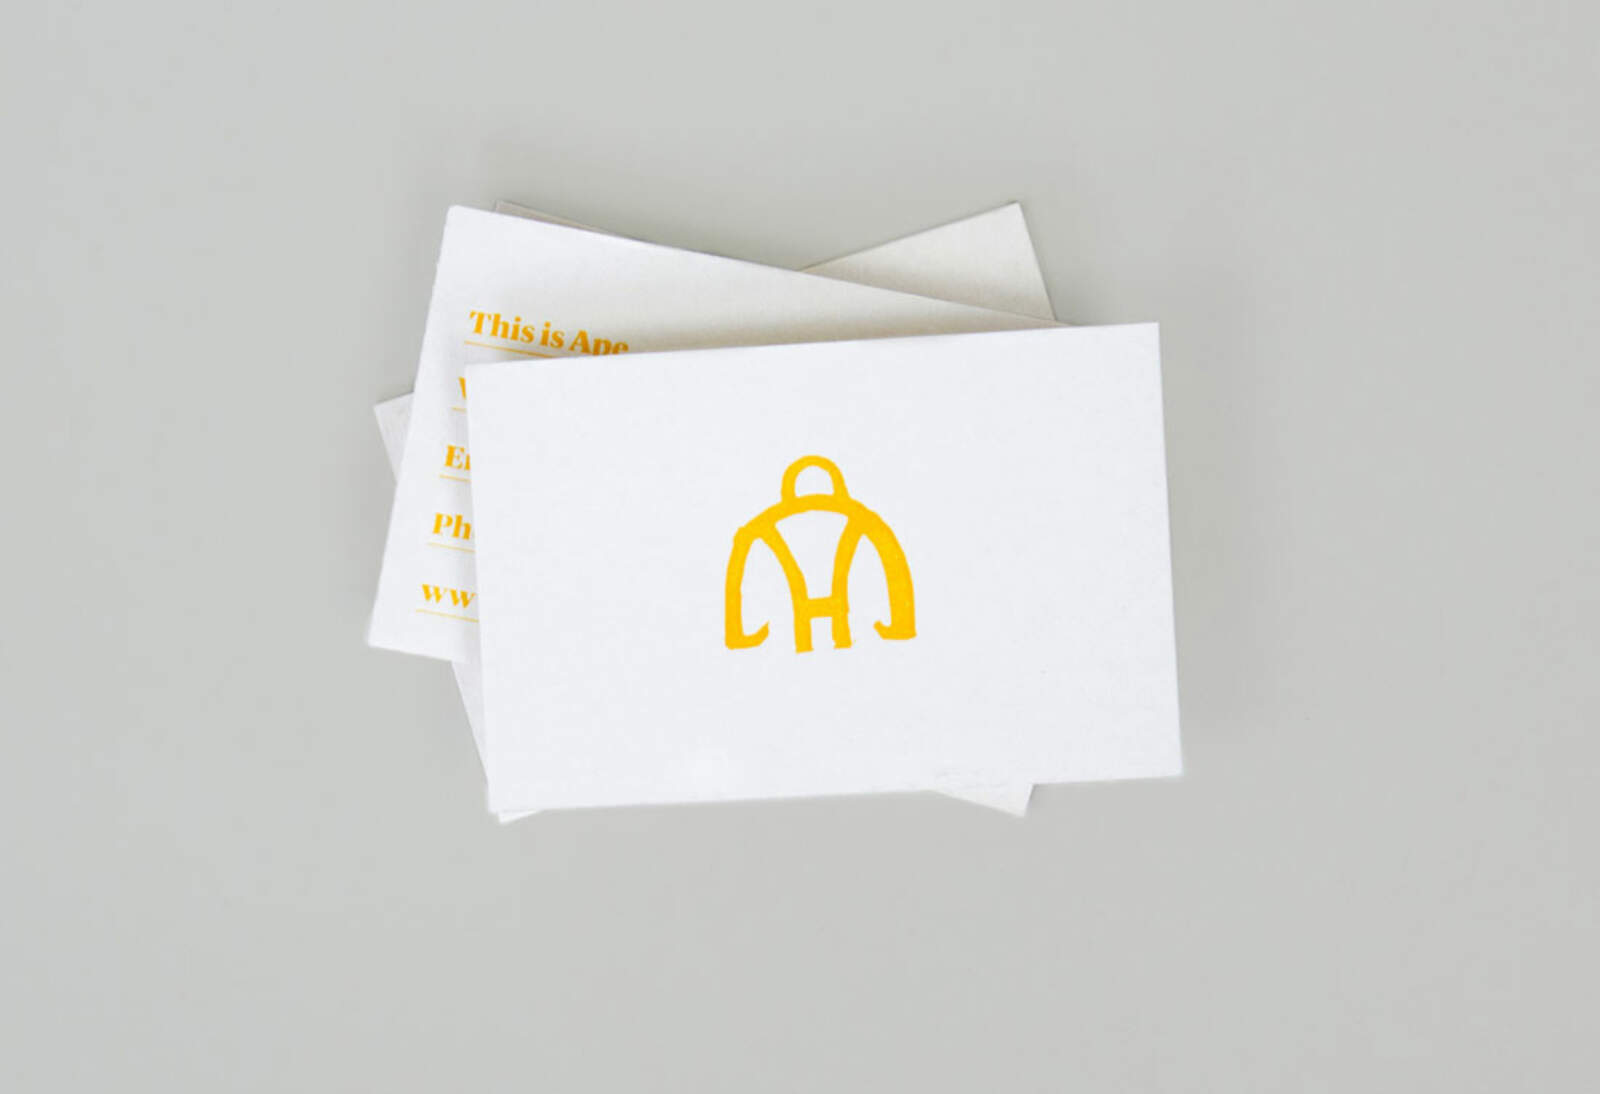 Ape branding used on business cards, front side with large logo.